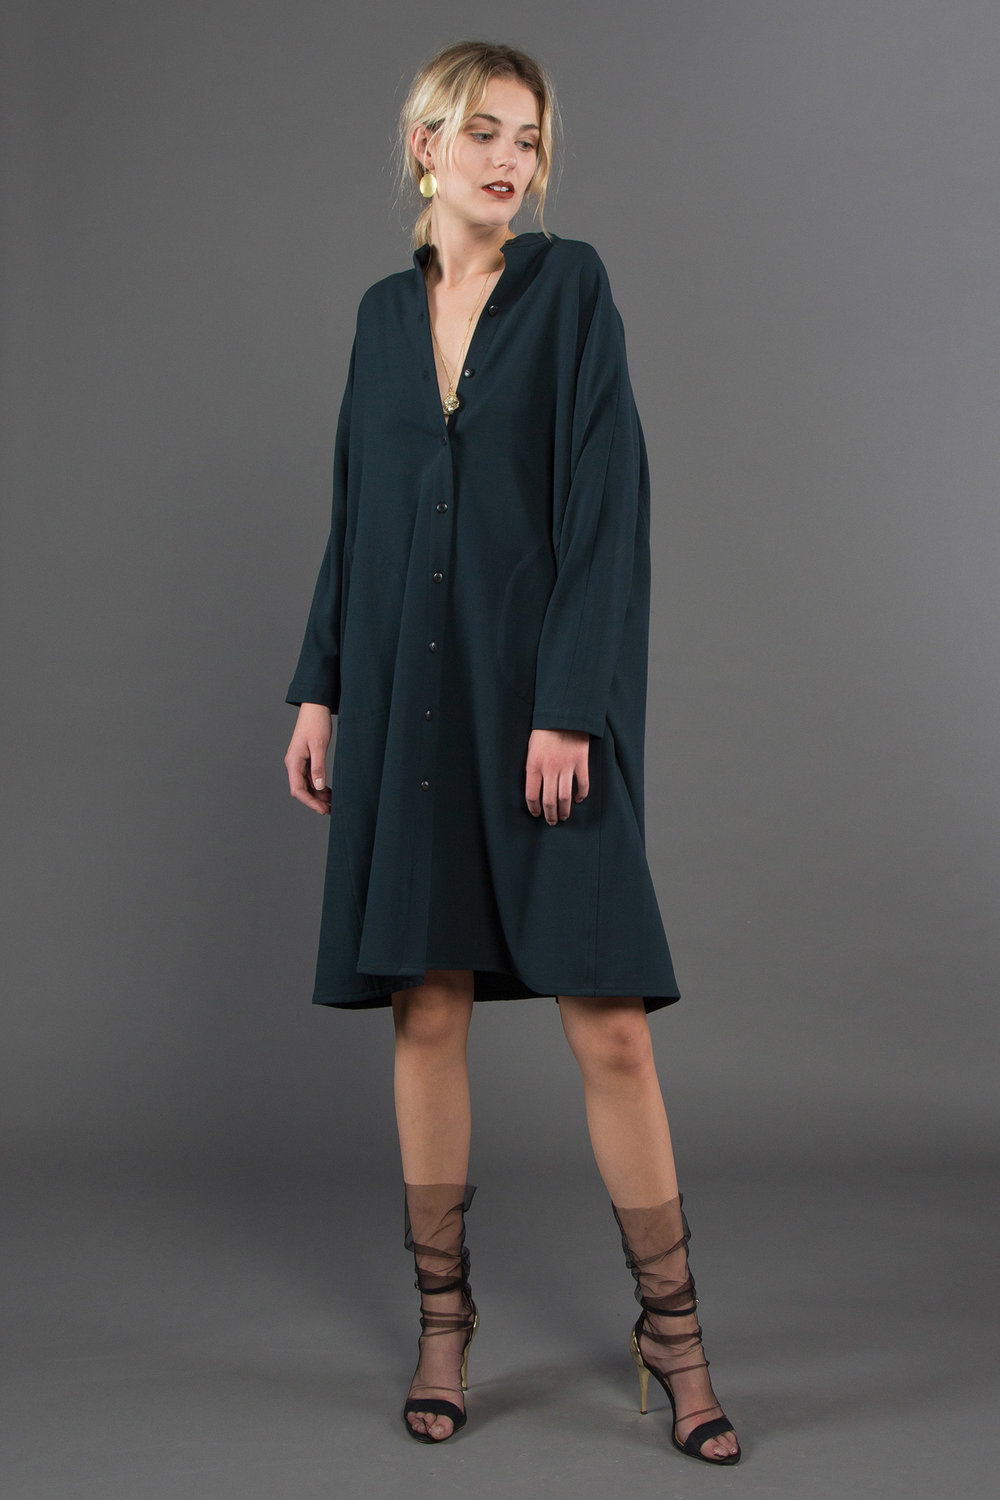 Japan Dress in Dark Green Wool  $895